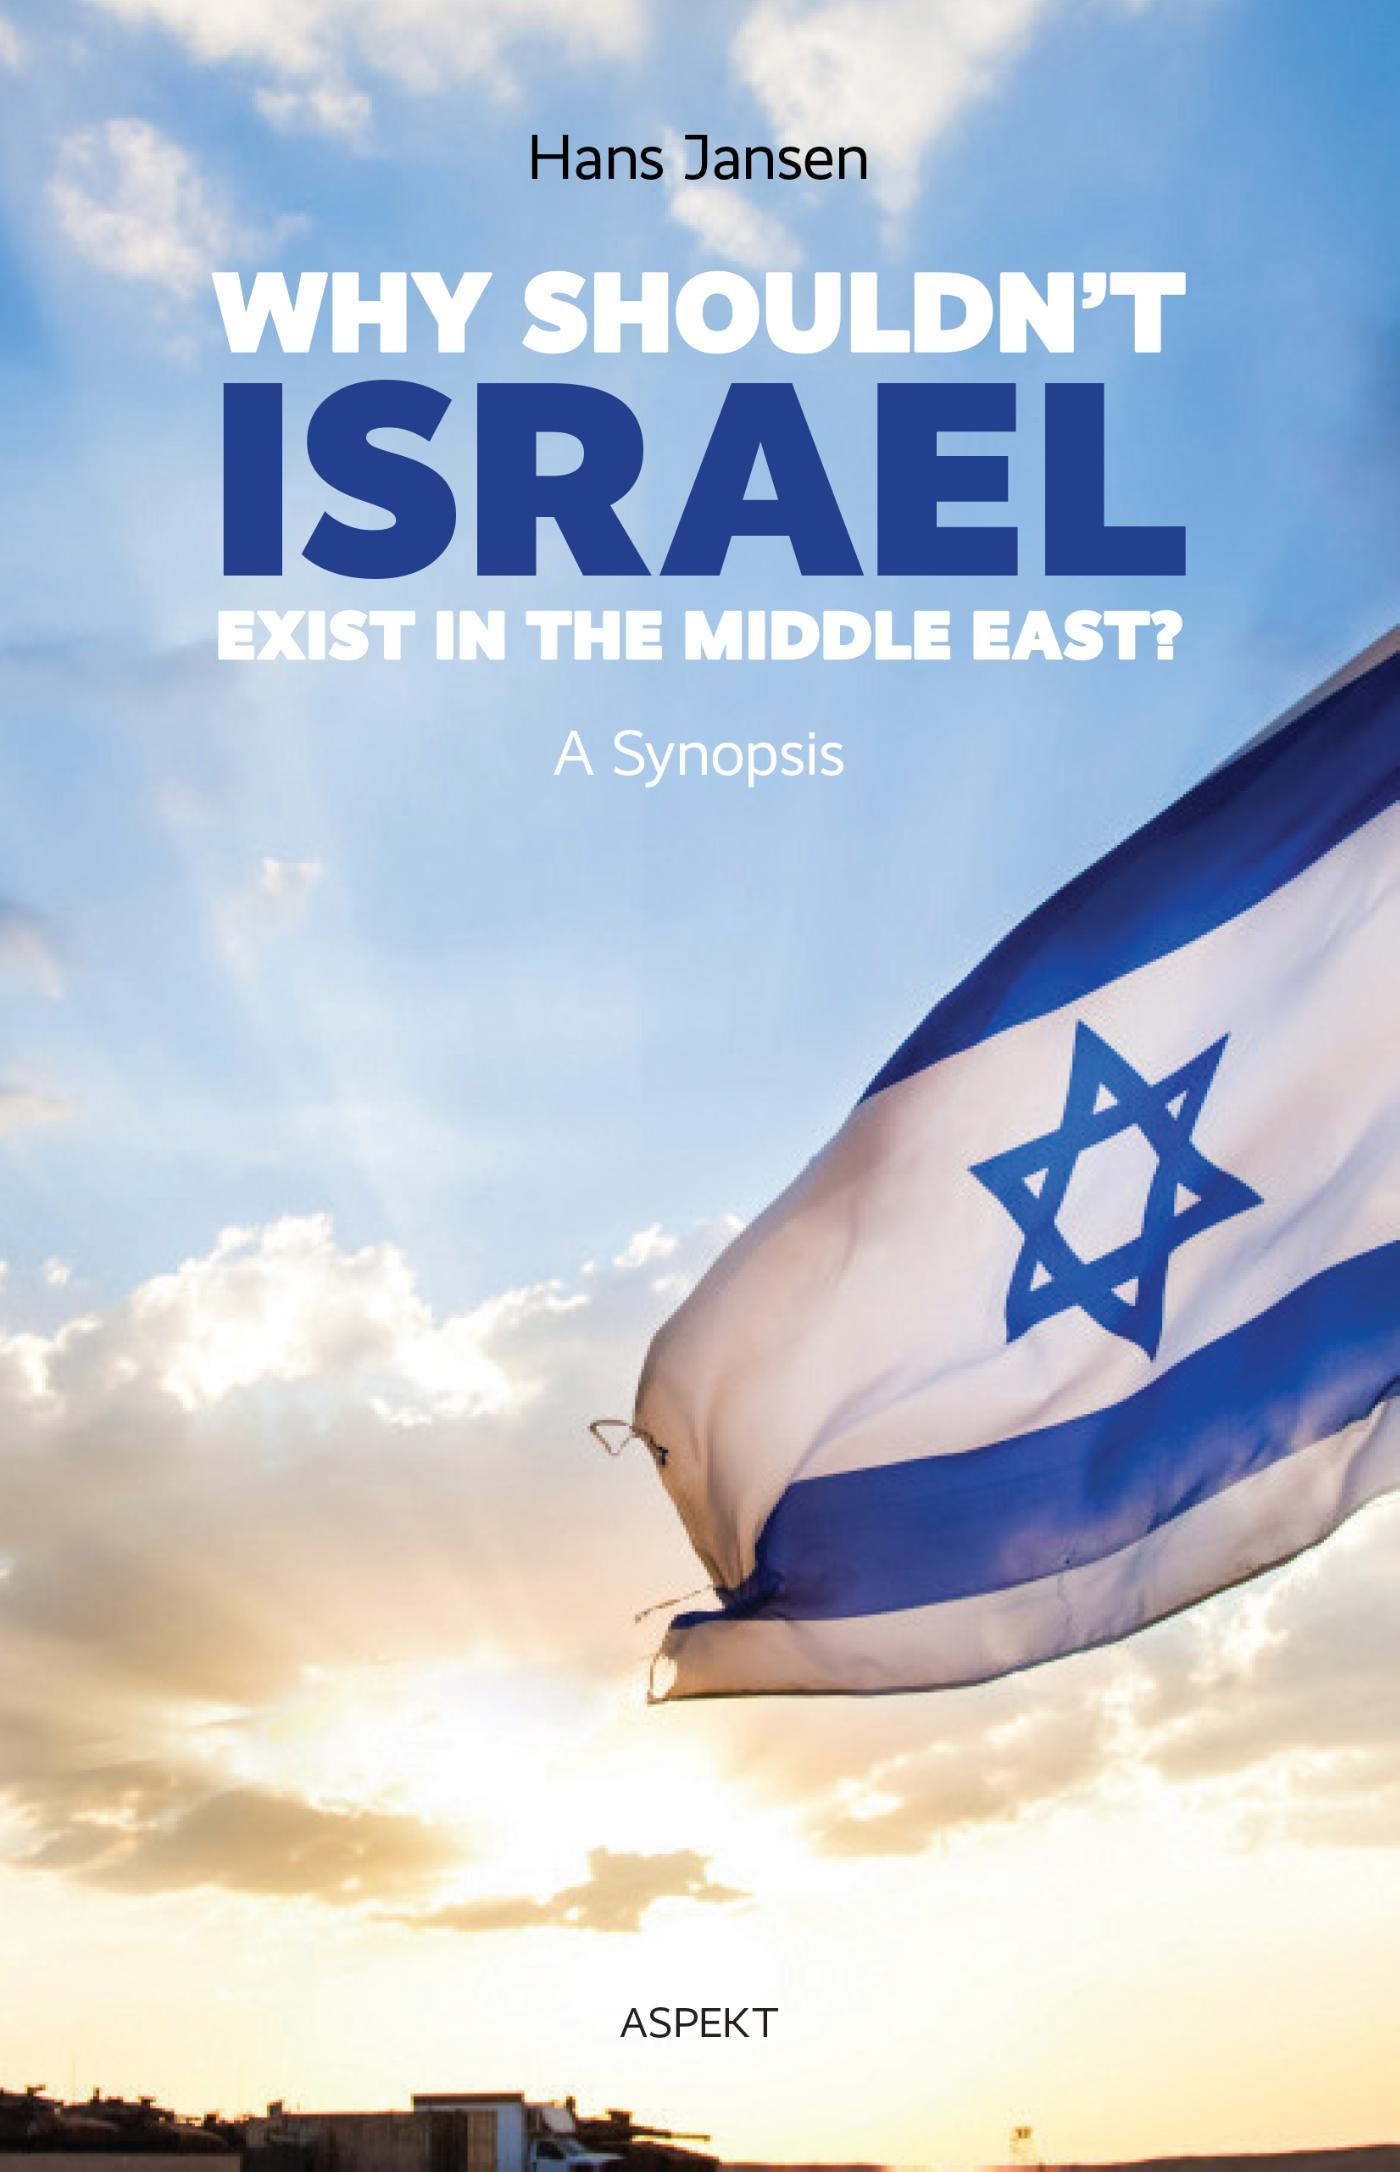 Why shouldn't Israel exist in the middle East